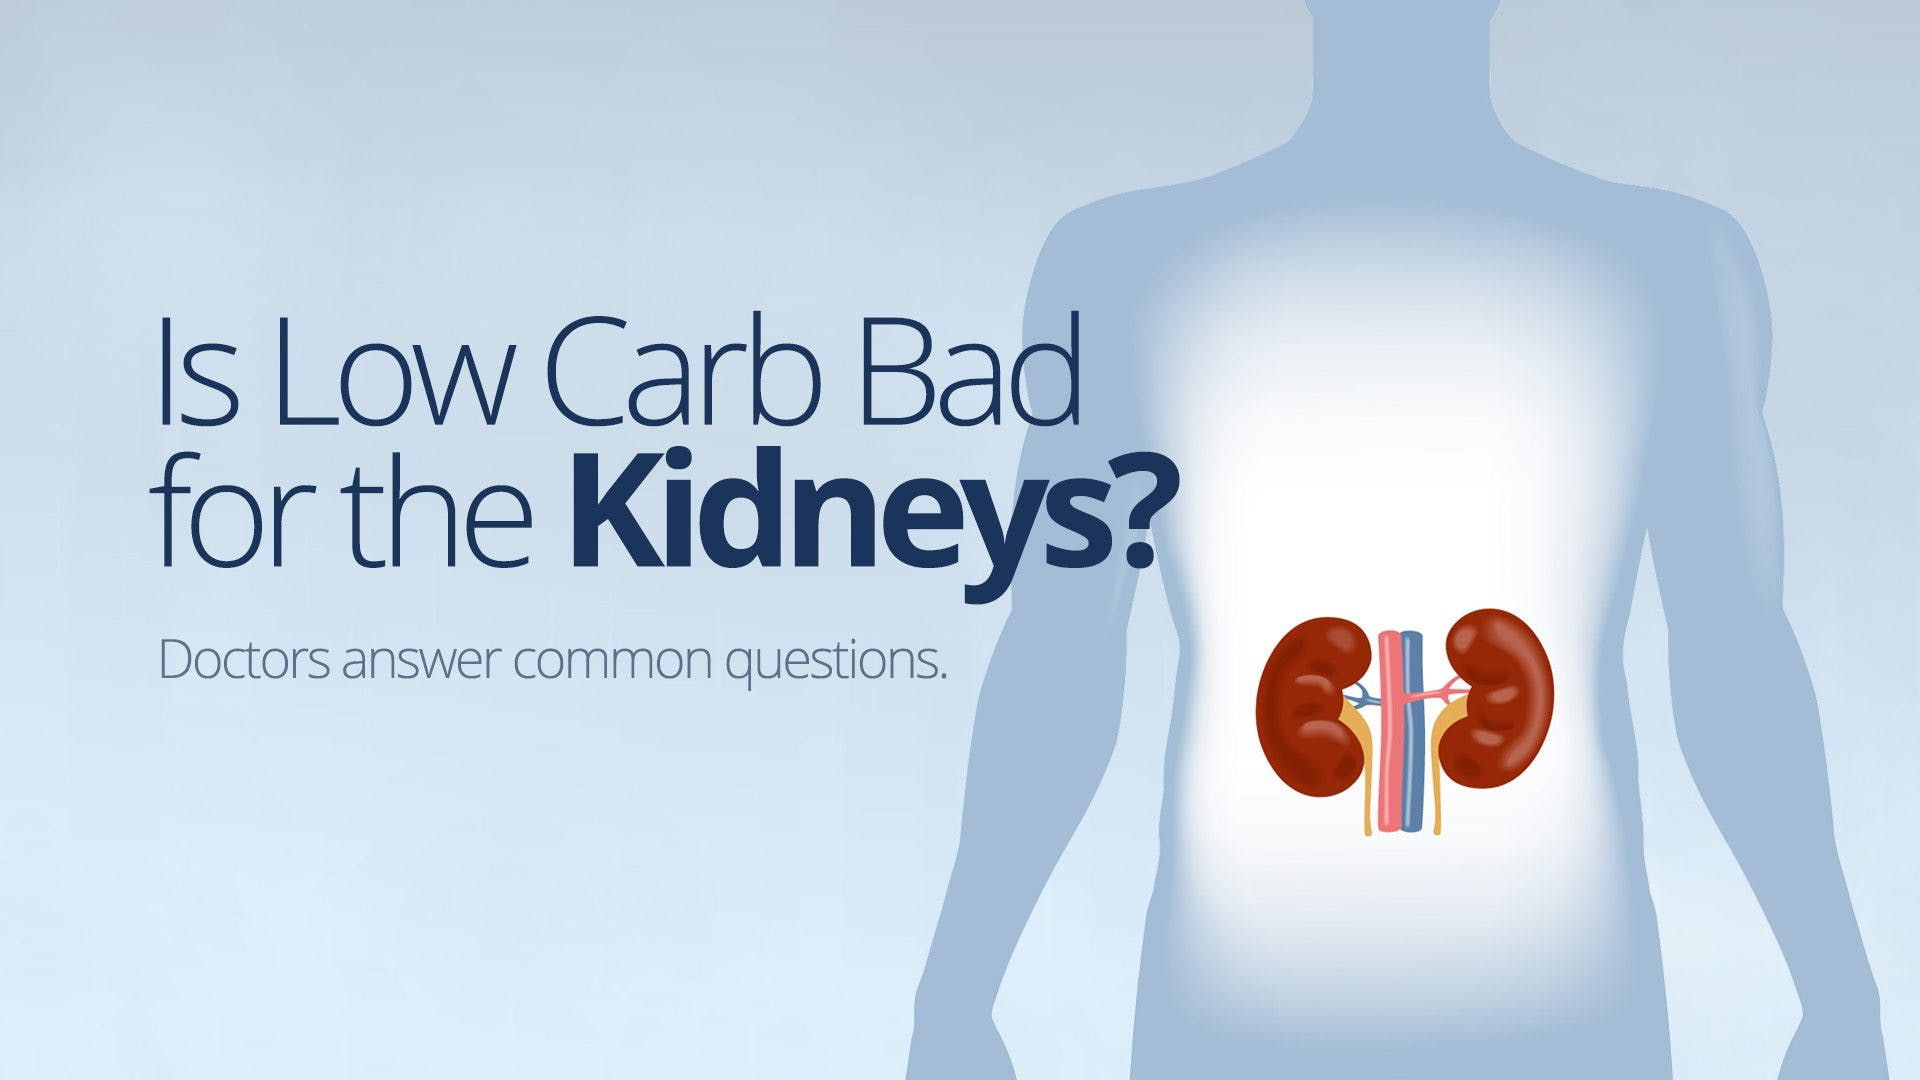 Is Low Carb Bad for the Kidneys?